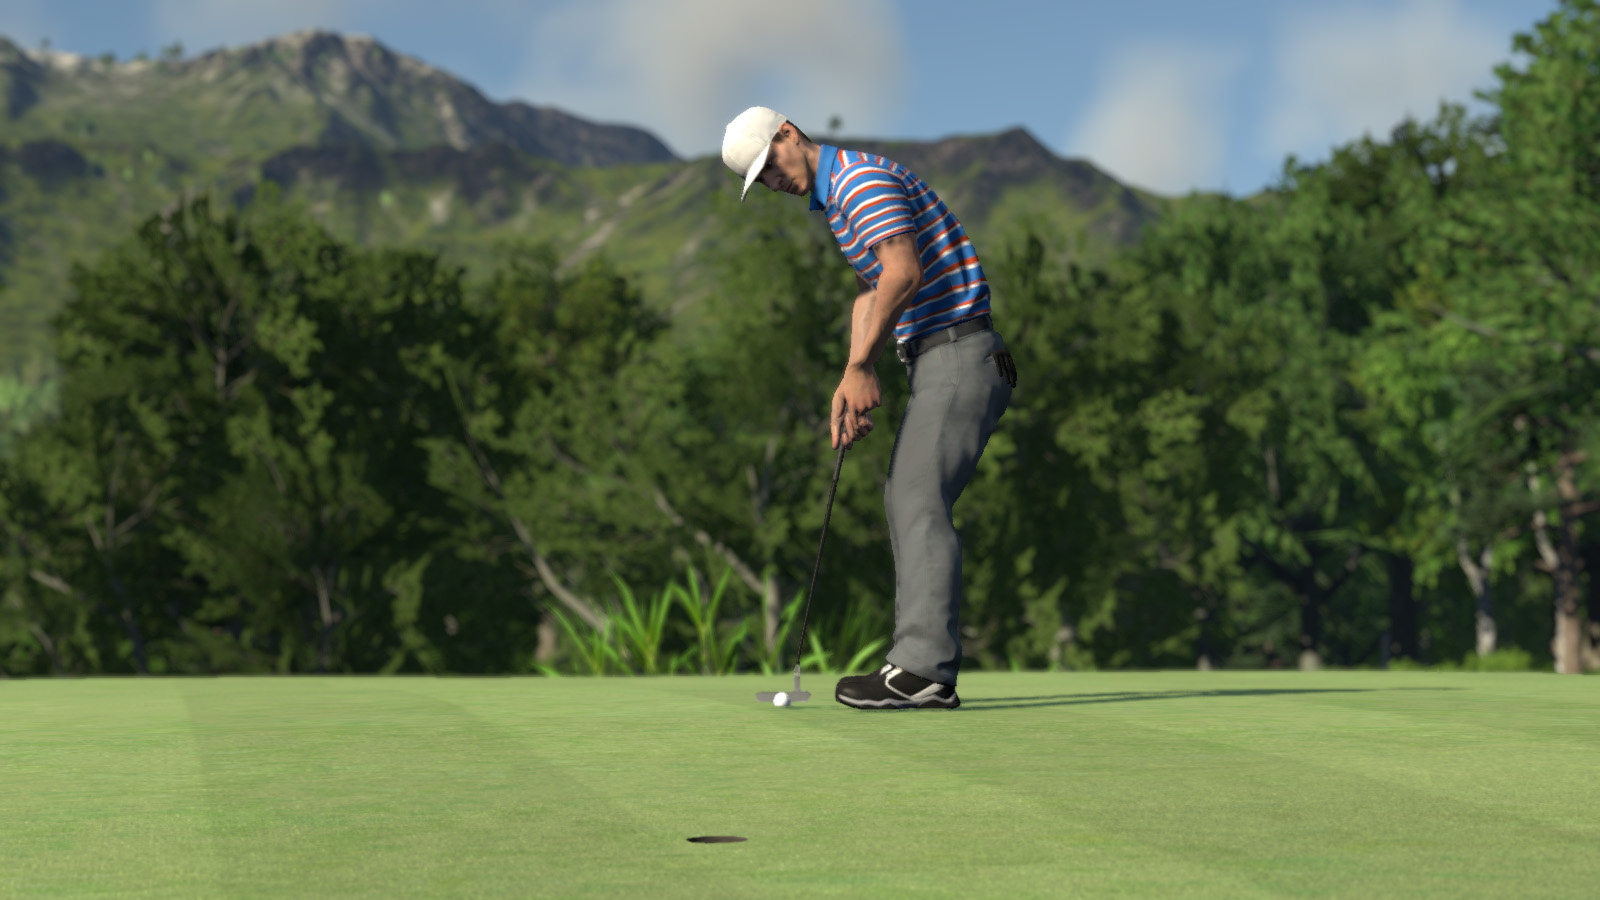 The Golf Club (PS4 / PlayStation 4) Game Profile | News, Reviews, Videos & Screenshots